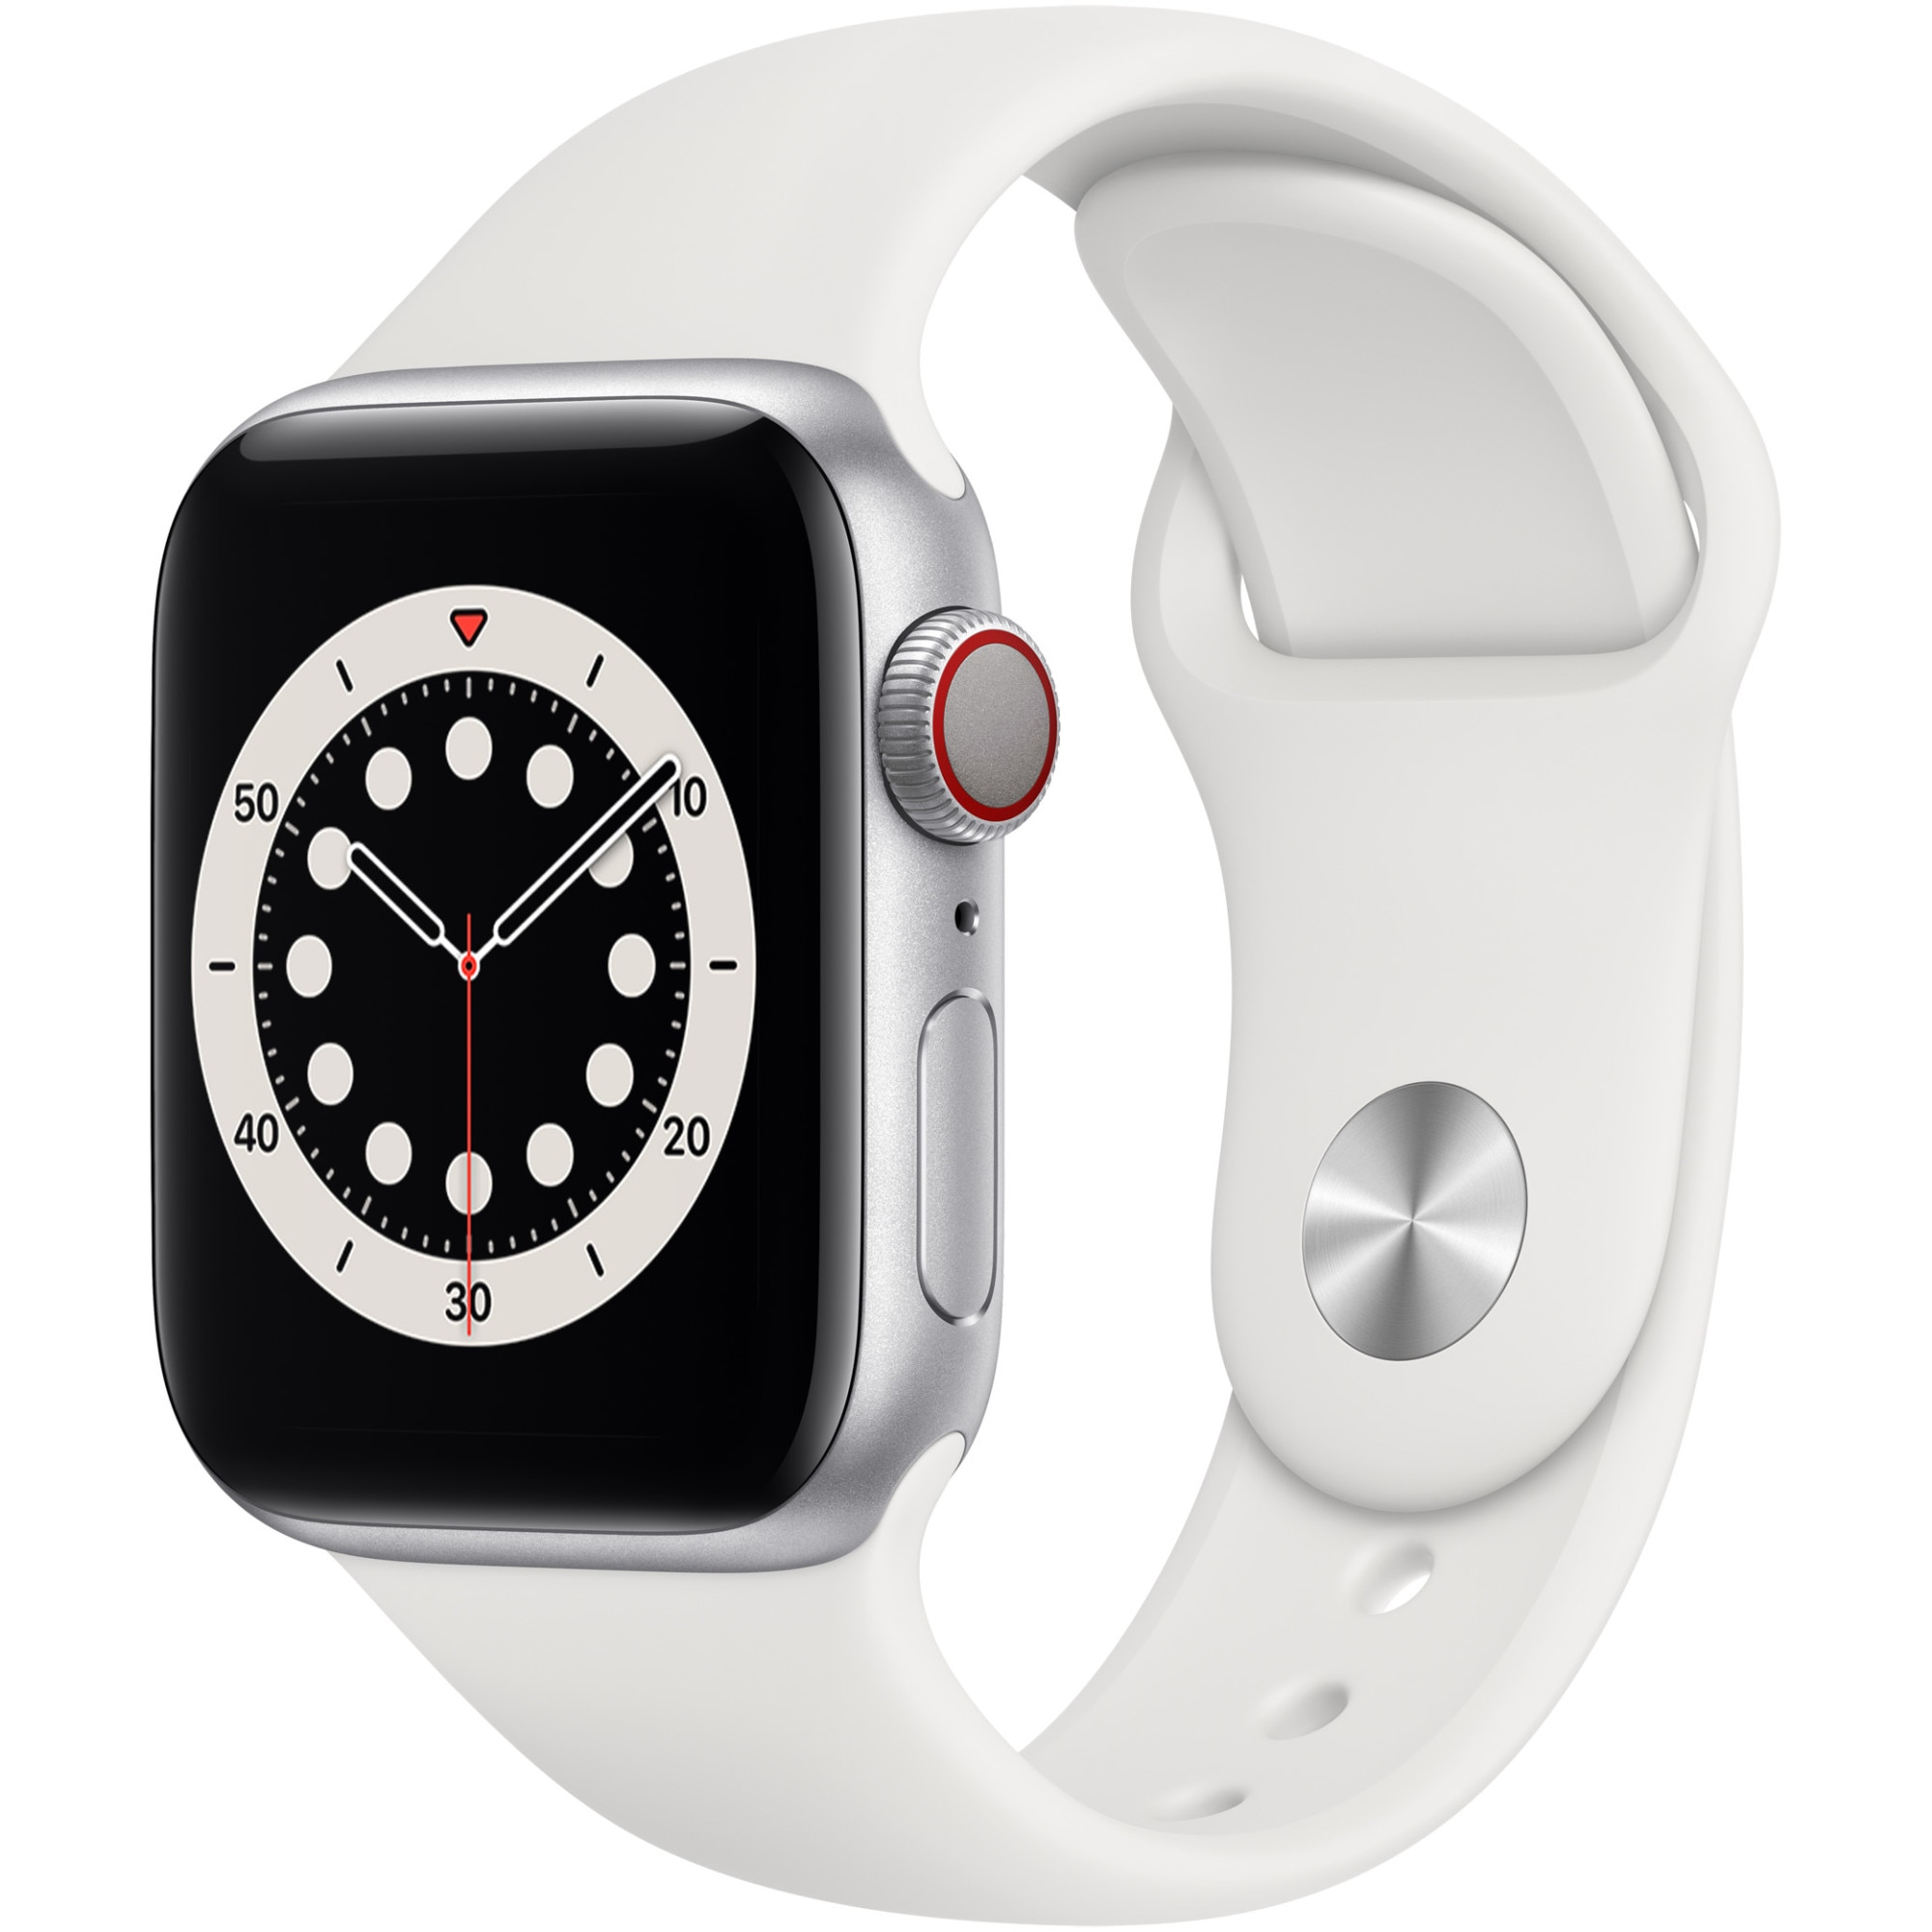 Fotografie Apple Watch 6, GPS, Cellular, Carcasa Silver Aluminium 40mm, White Sport Band